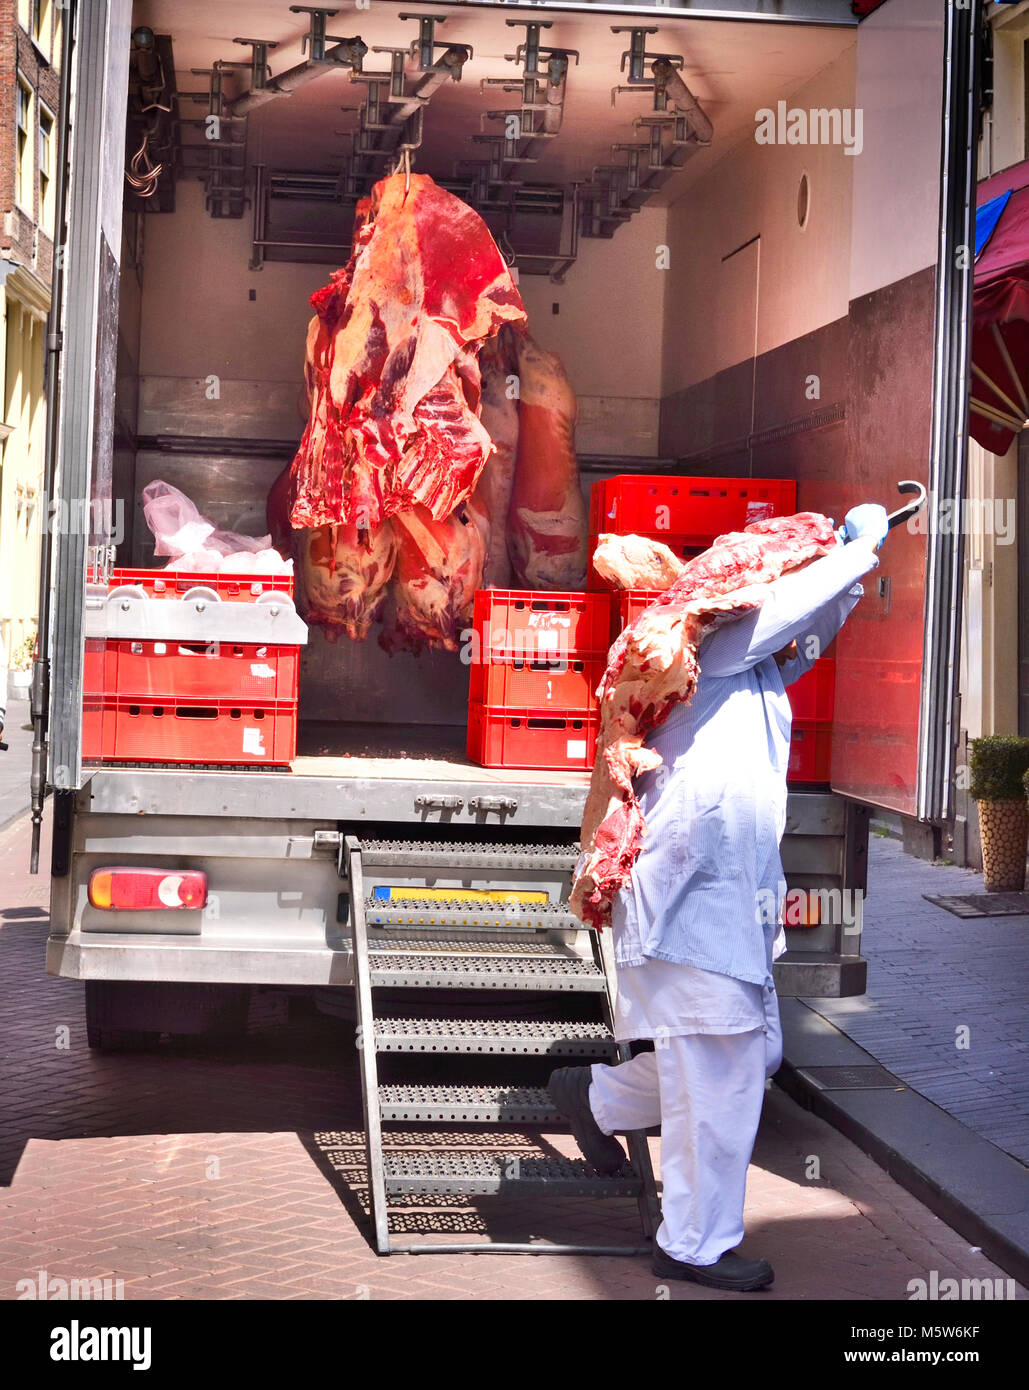 Food delivery of raw beef or pork, half beef in a cooling truck. Fresh red meat, buttery or slaughter house theme. - Stock Image